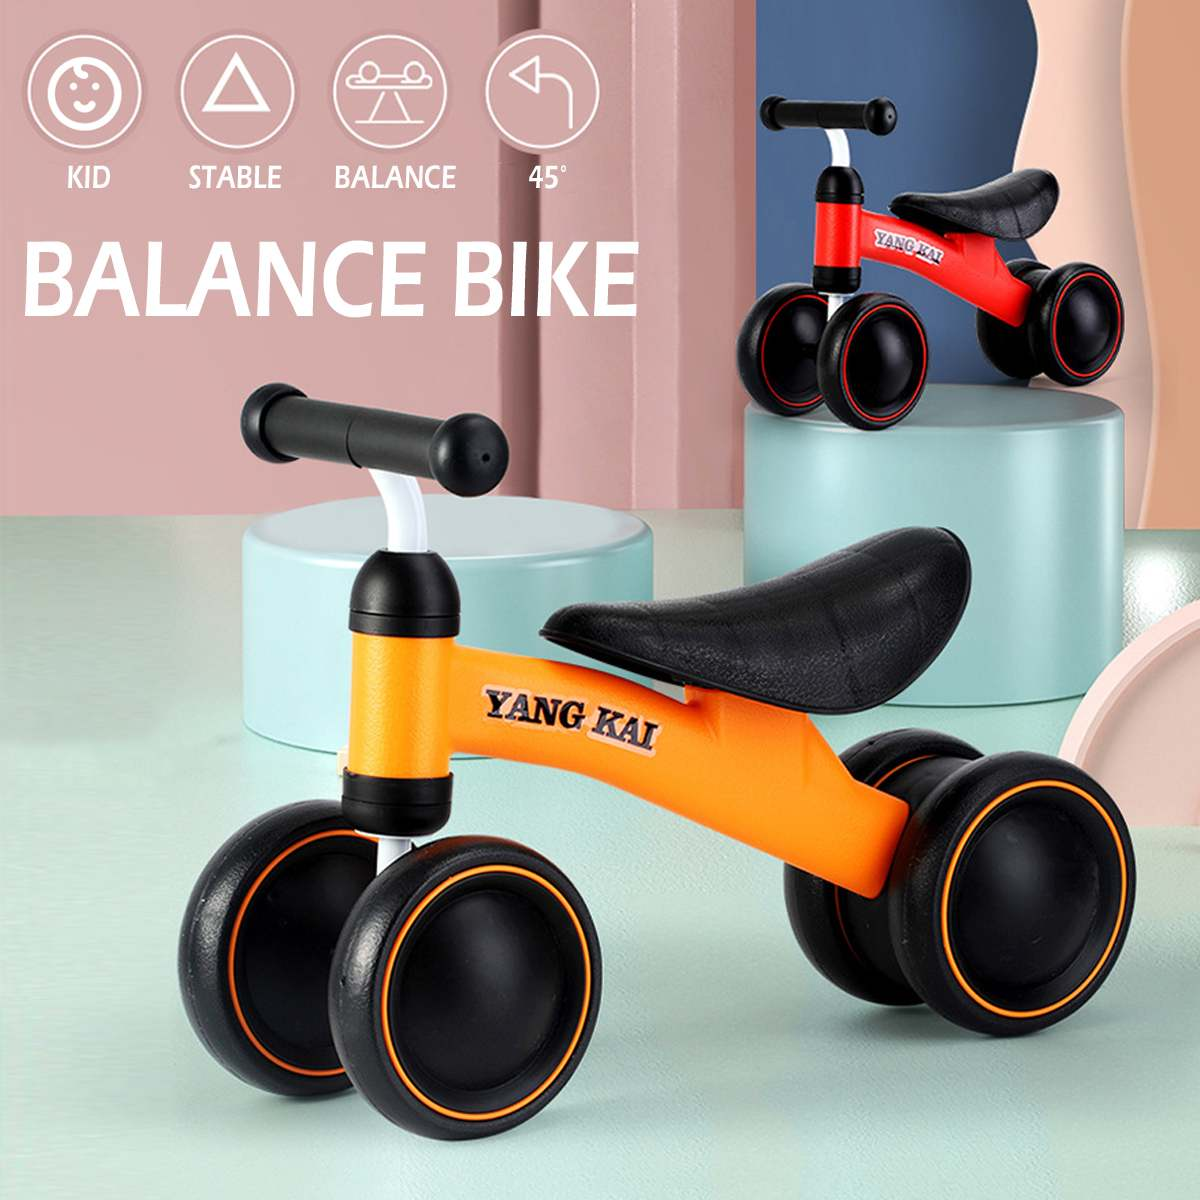 Baby Balance Bike Child Walker Scooter Kids Ride on Cars Toys Gift No Foot Pedal Driving Bicycle Safe Four Wheels Bike Kids Toys